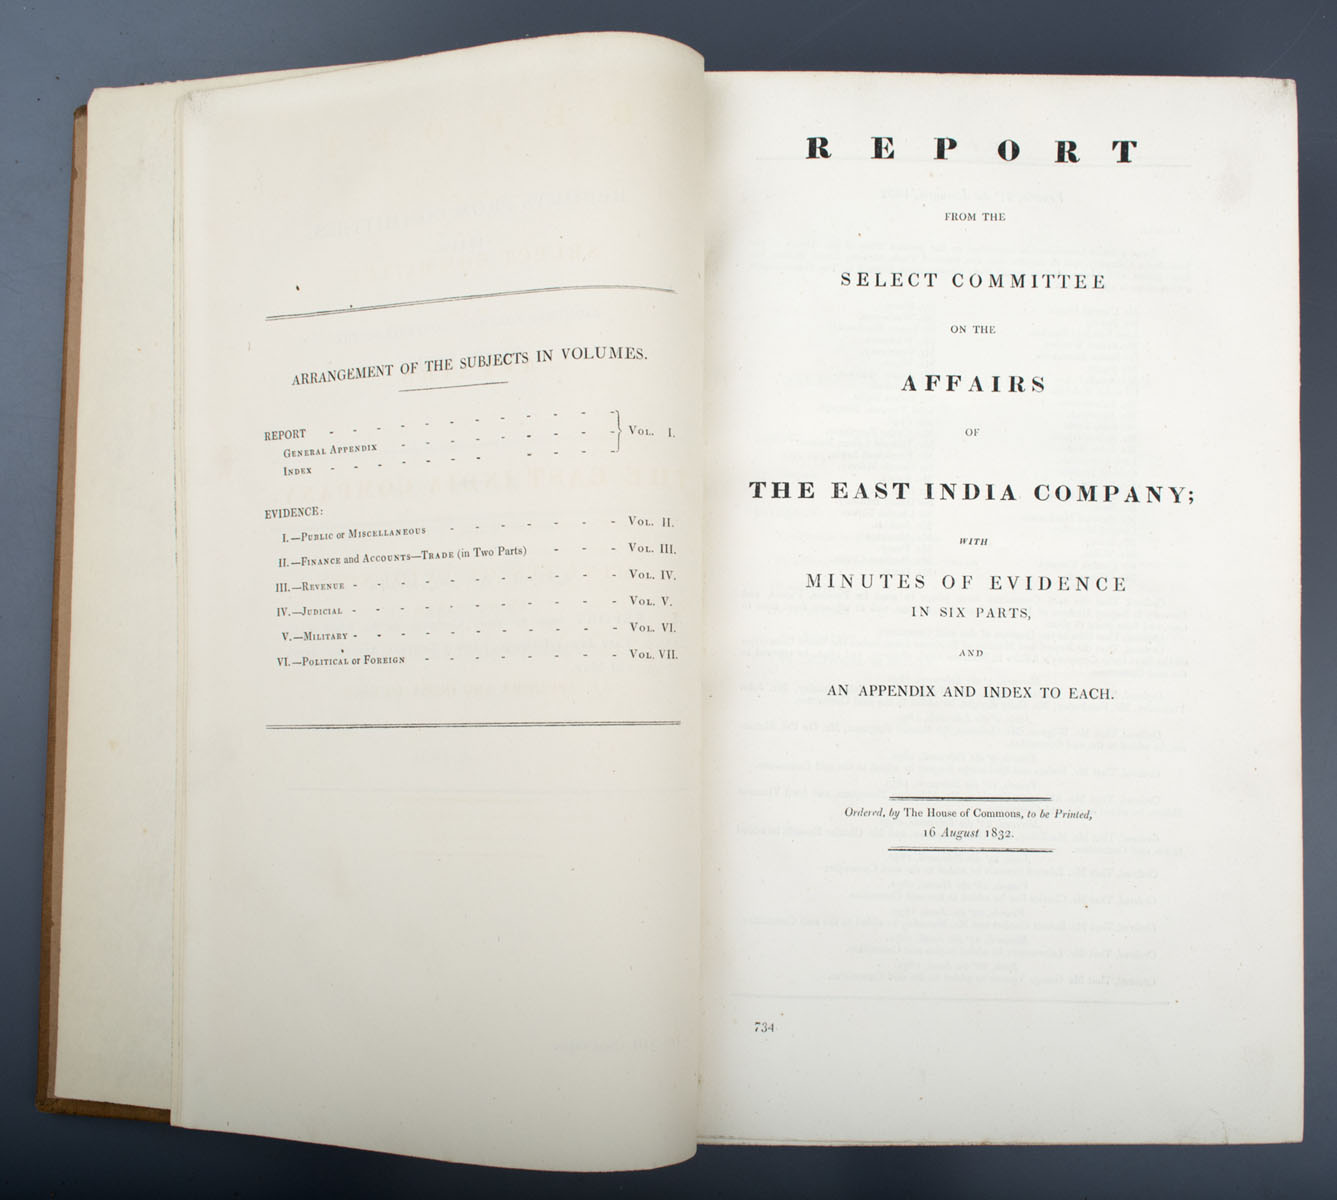 Reports from the Select Committee on the Affairs of The East India Company with Minutes of Evidence in Six Parts